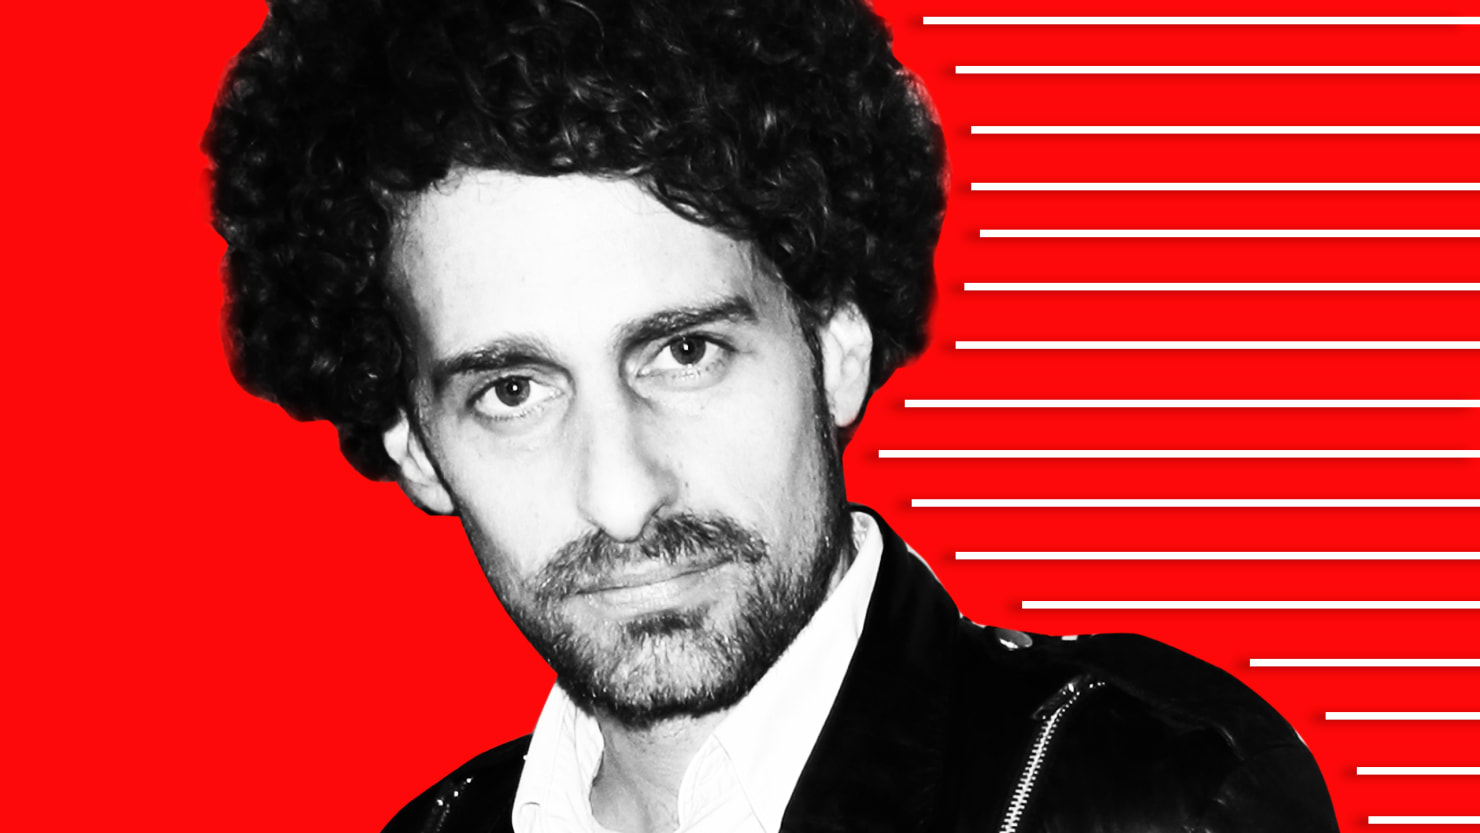 isaac kappy - photo #26